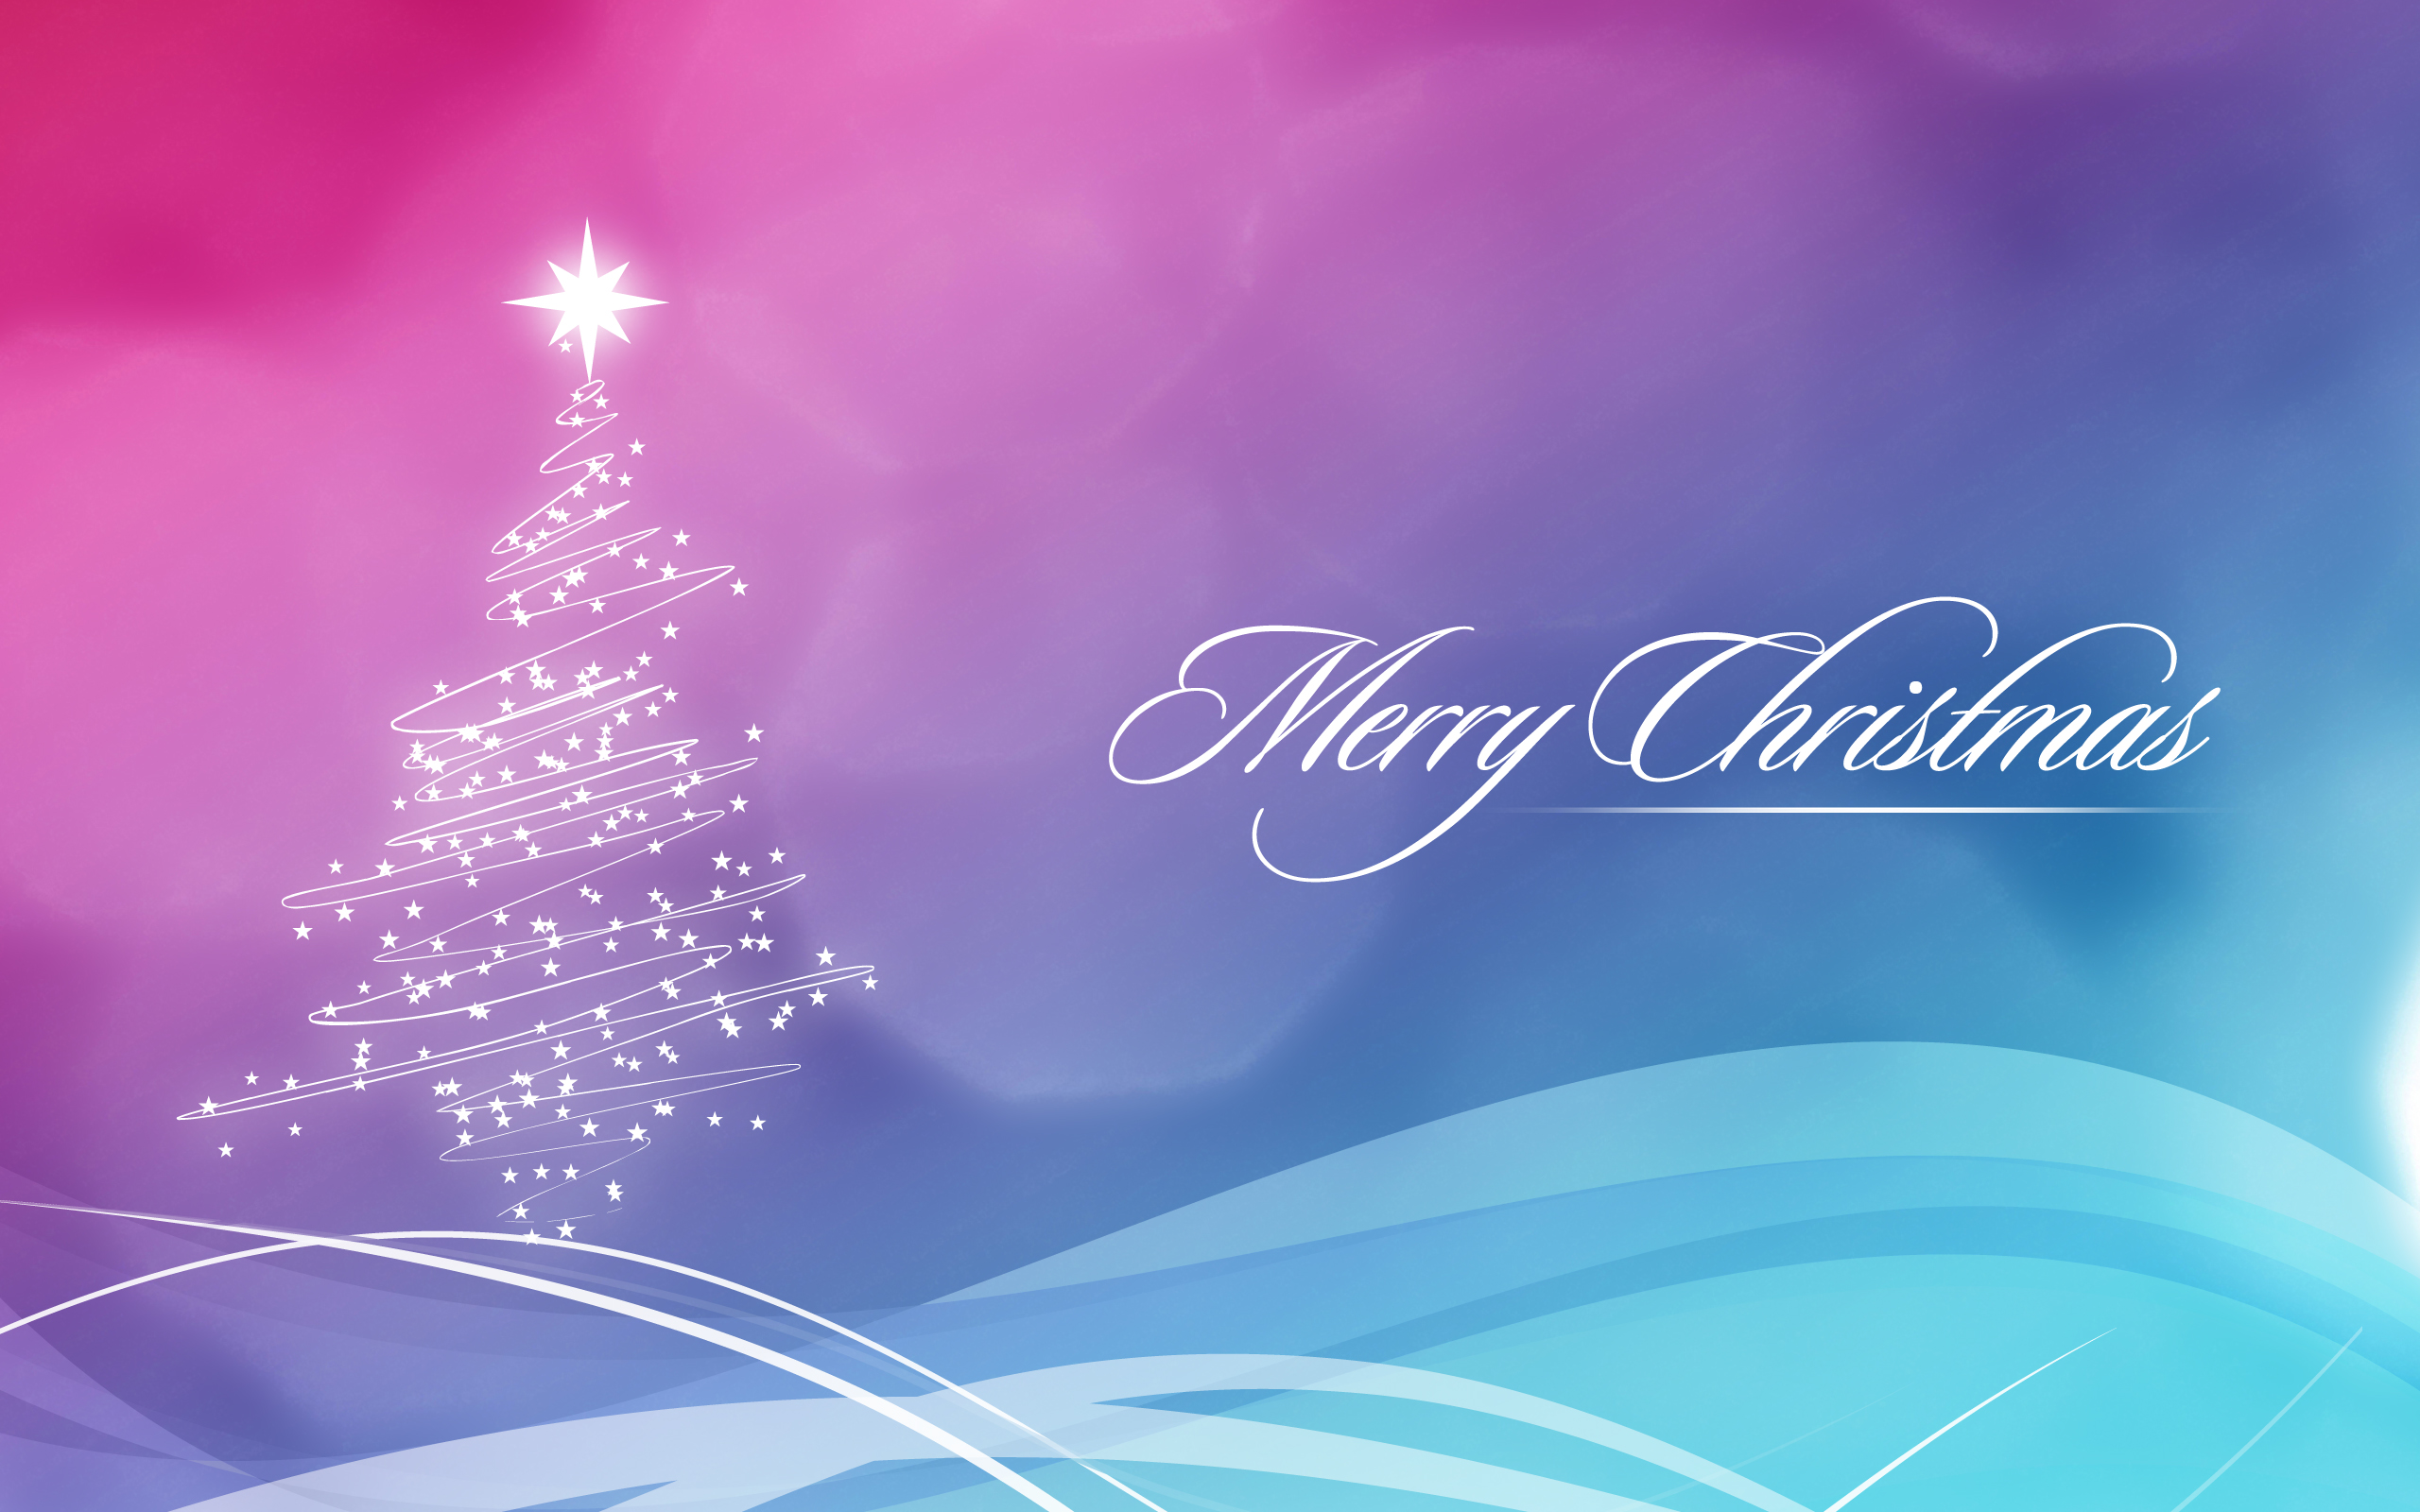 Blue and Pink Christmas Wallpaper wallpapers Blue and Pink Christmas 2560x1600